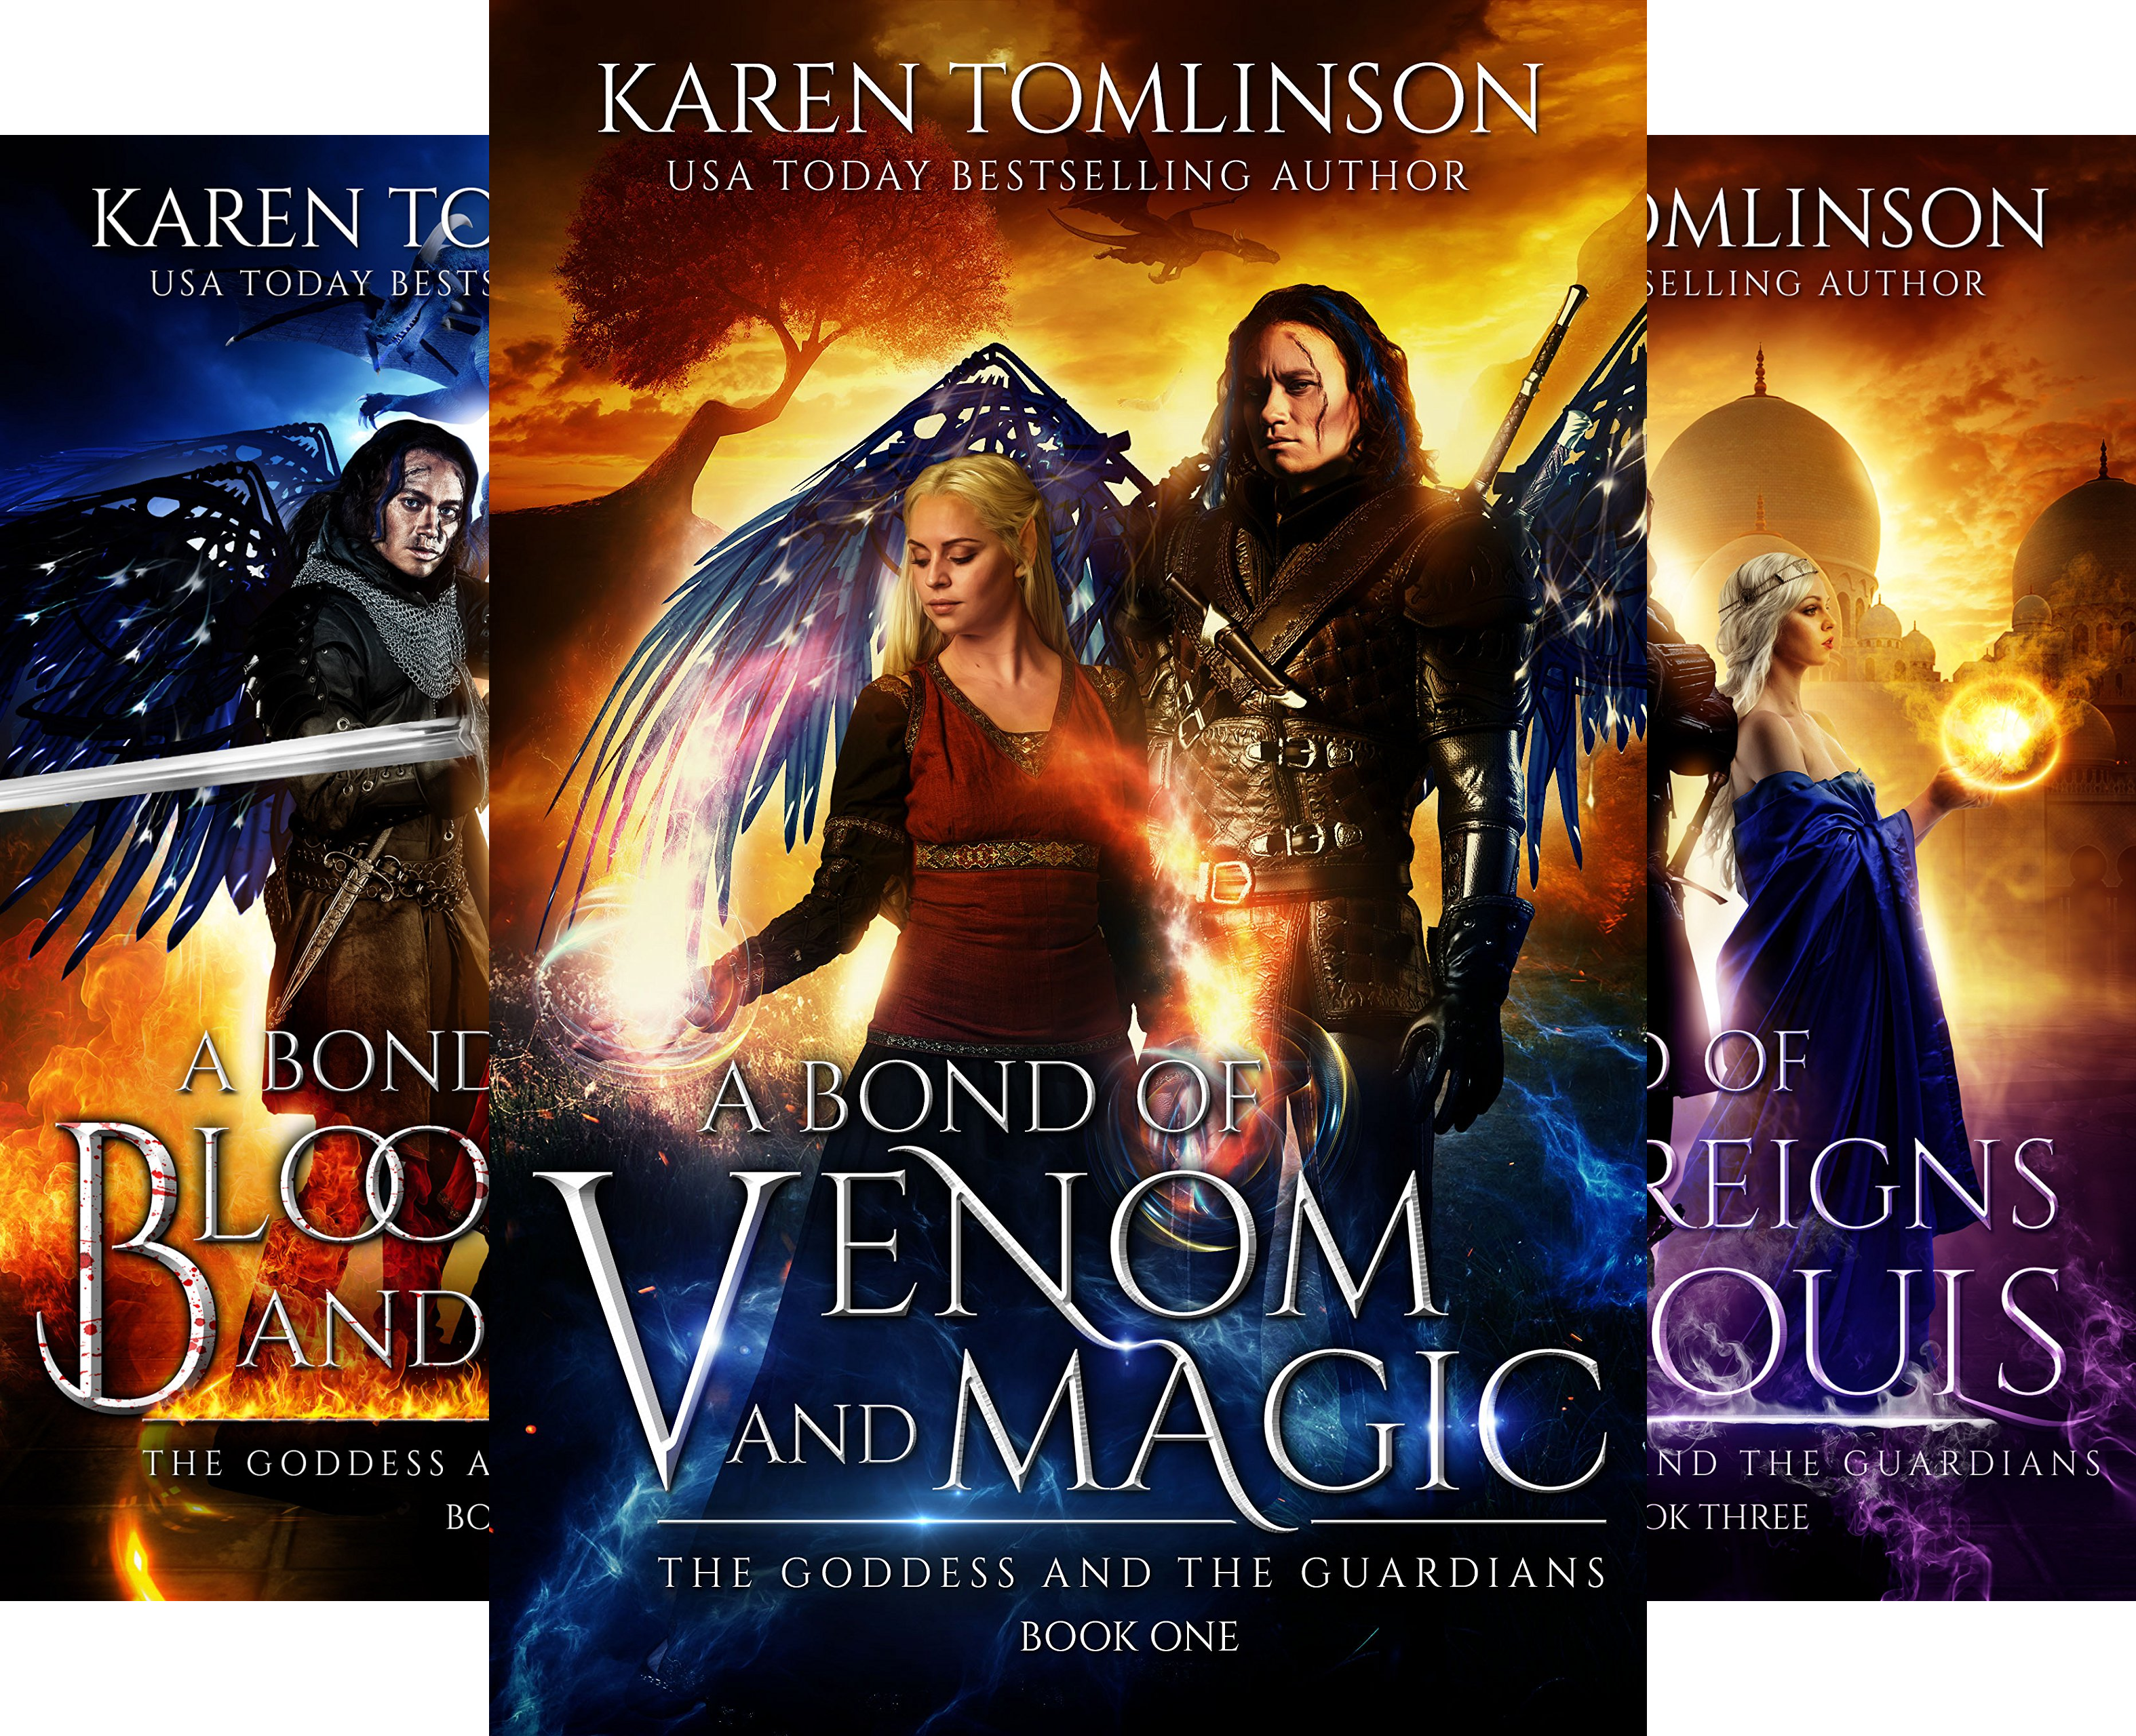 The Goddess and the Guardians (3 Book Series)